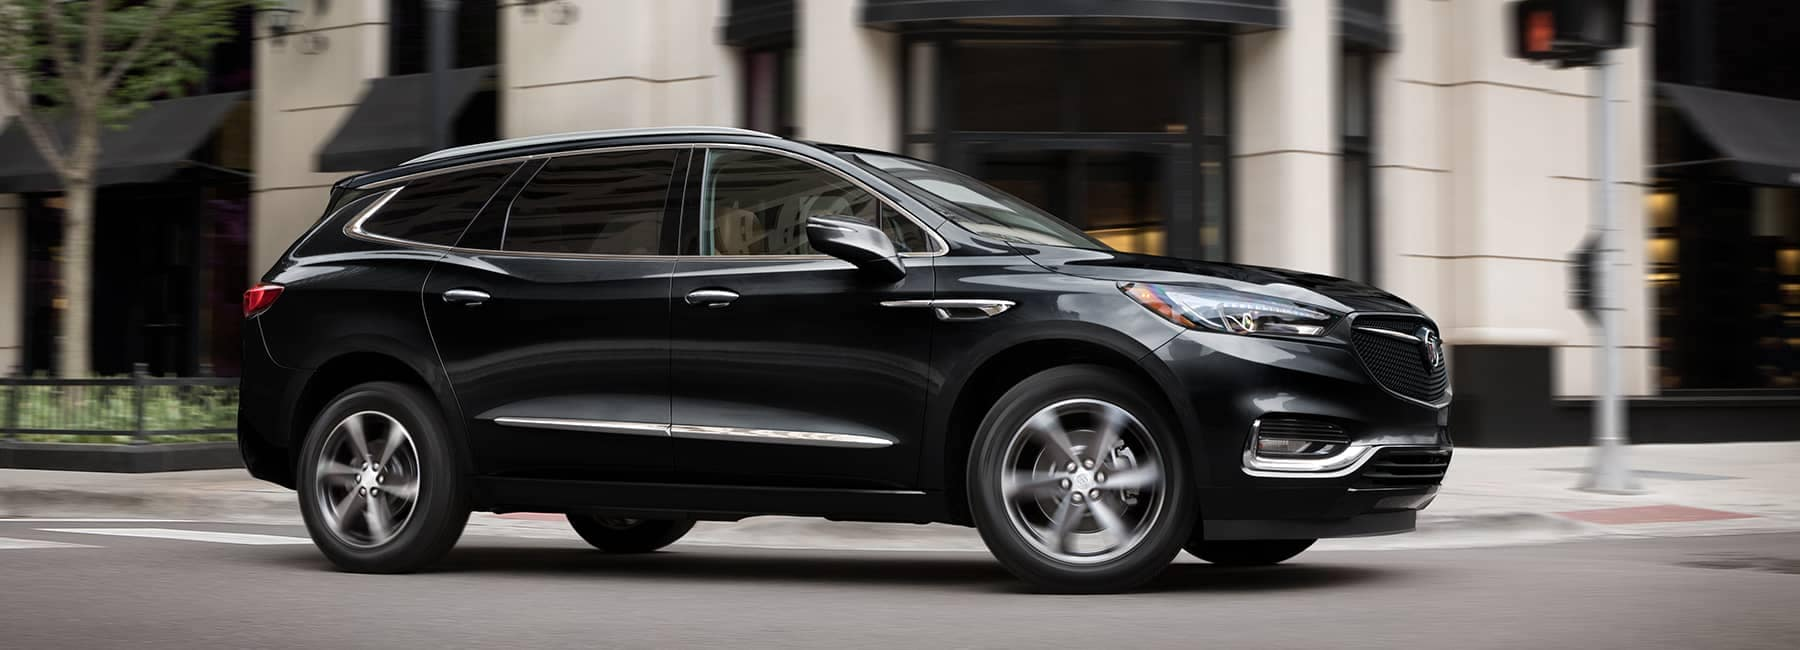 Black 2020 Buick Enclave on a city road